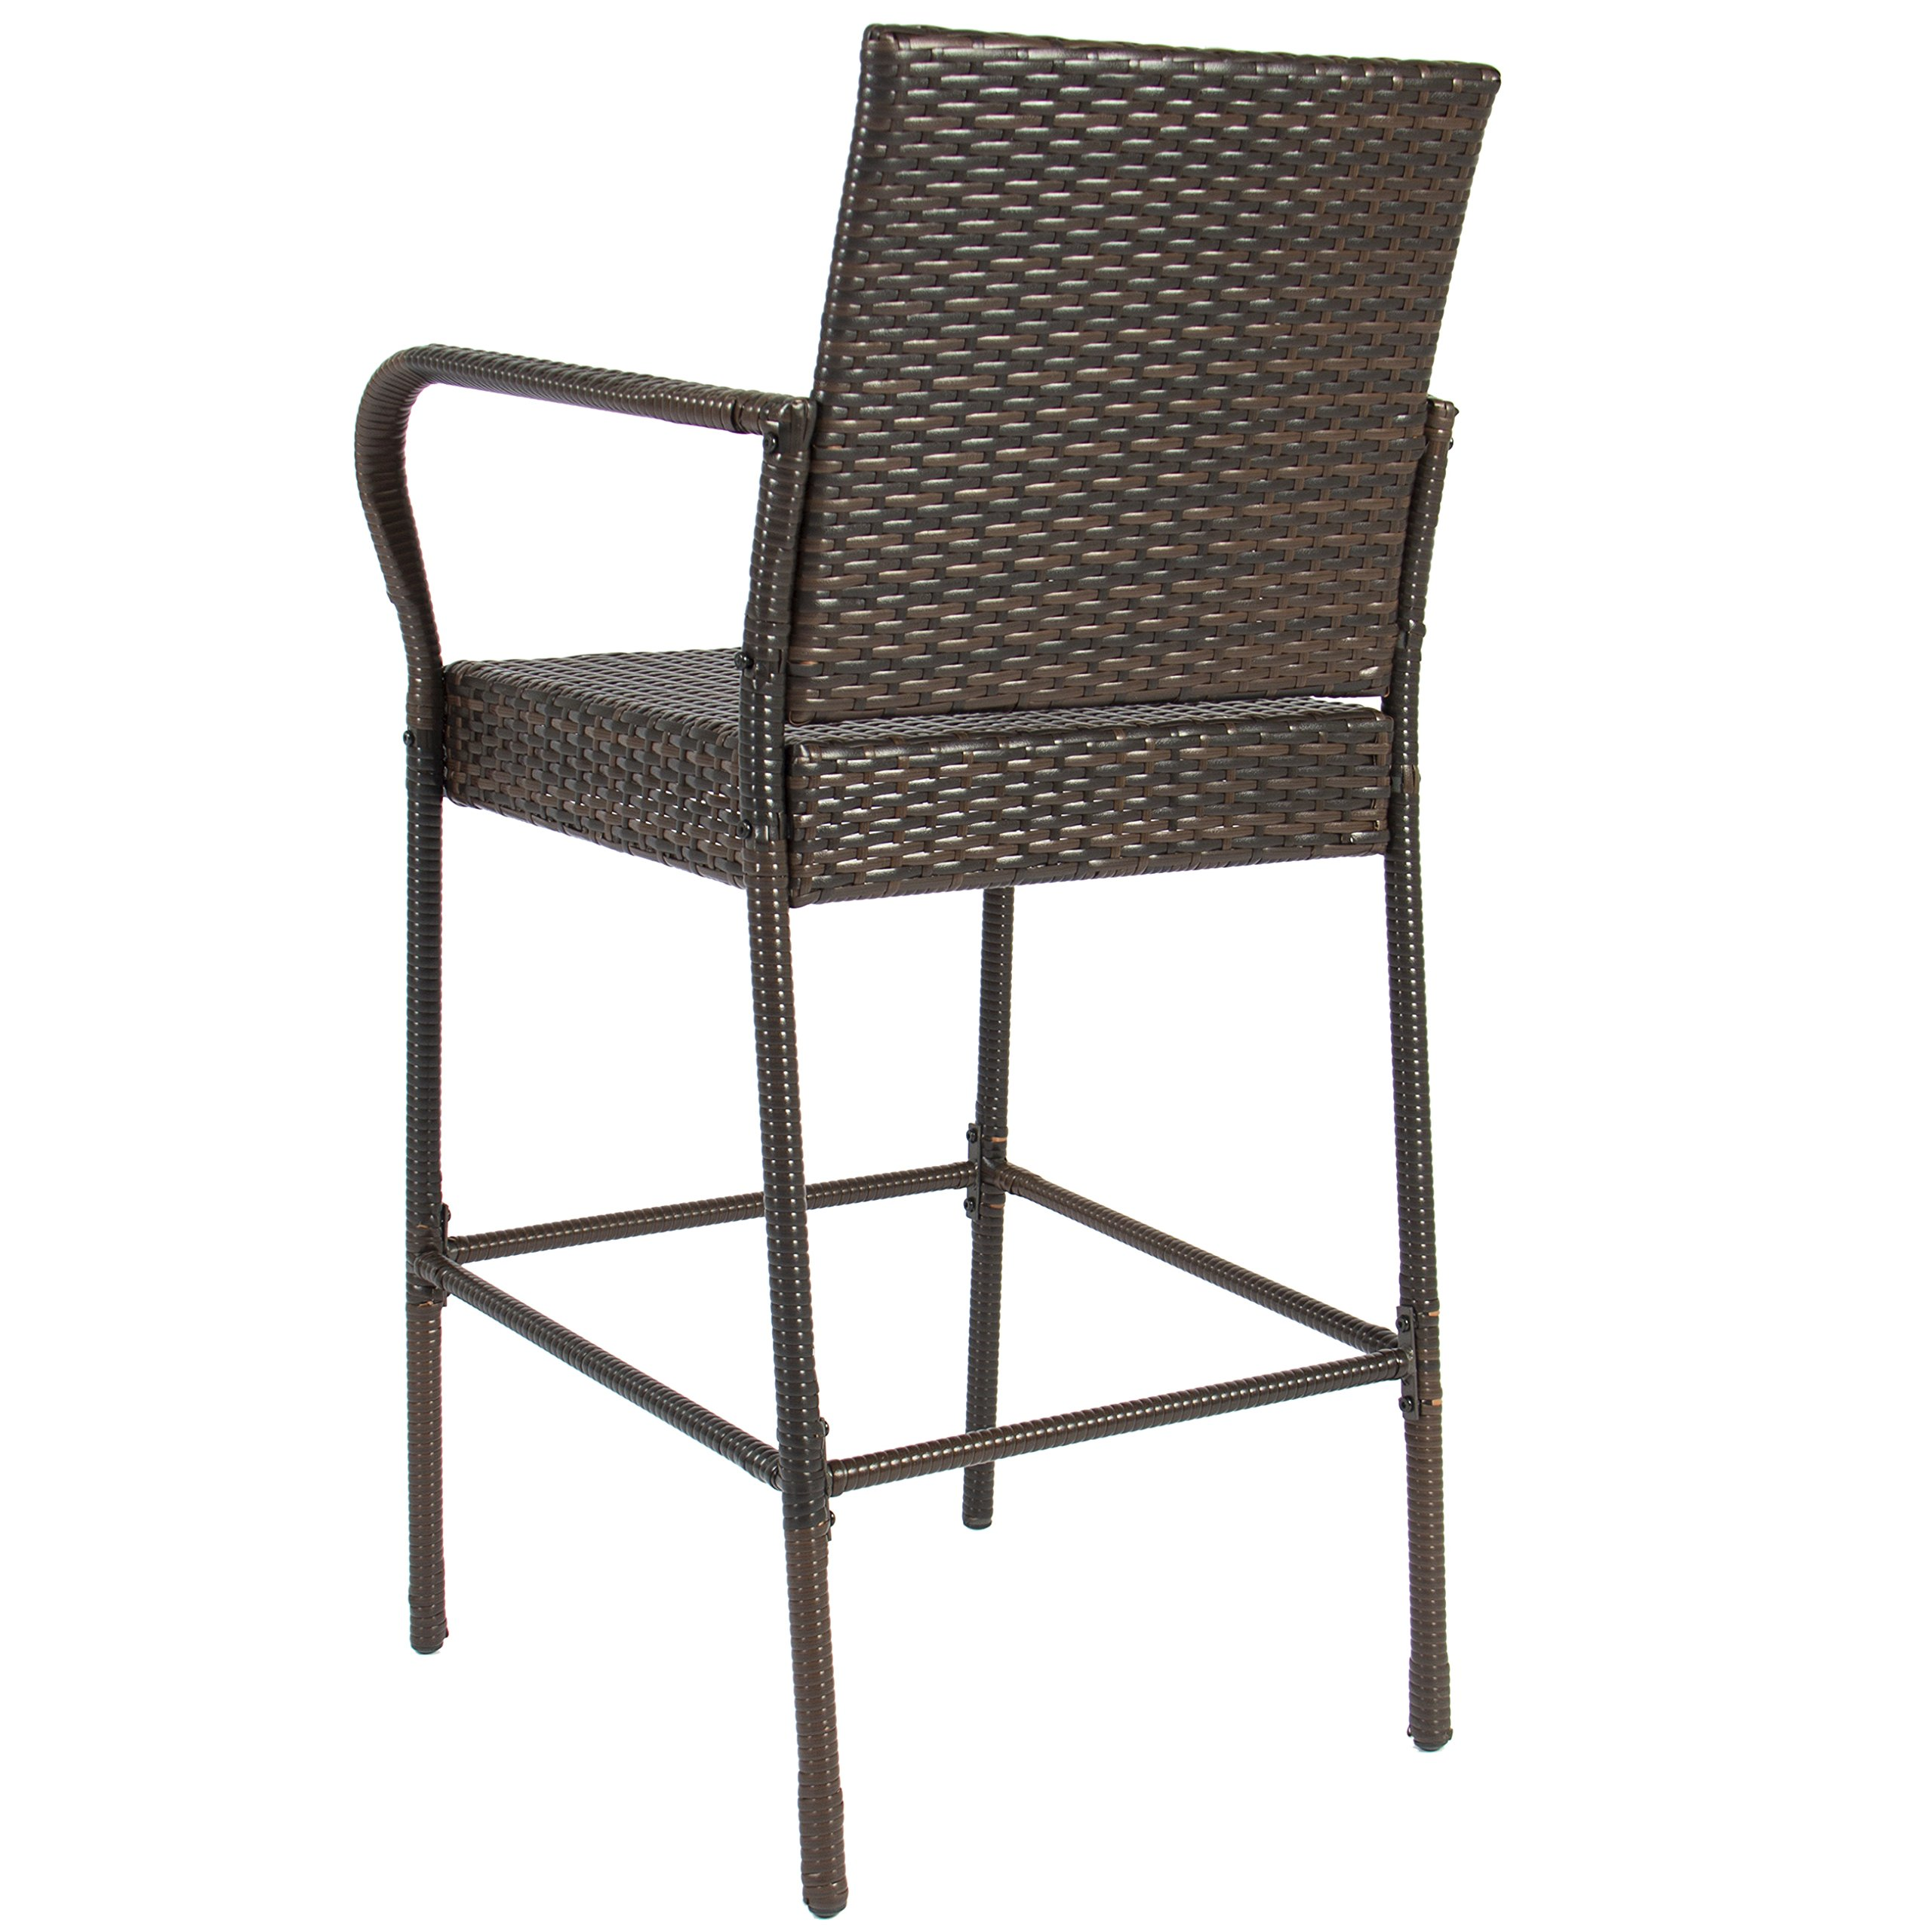 Best Choice Products Set of 2 Outdoor Brown Wicker Barstool Outdoor Patio Furniture Bar Stool by Best Choice Products (Image #5)